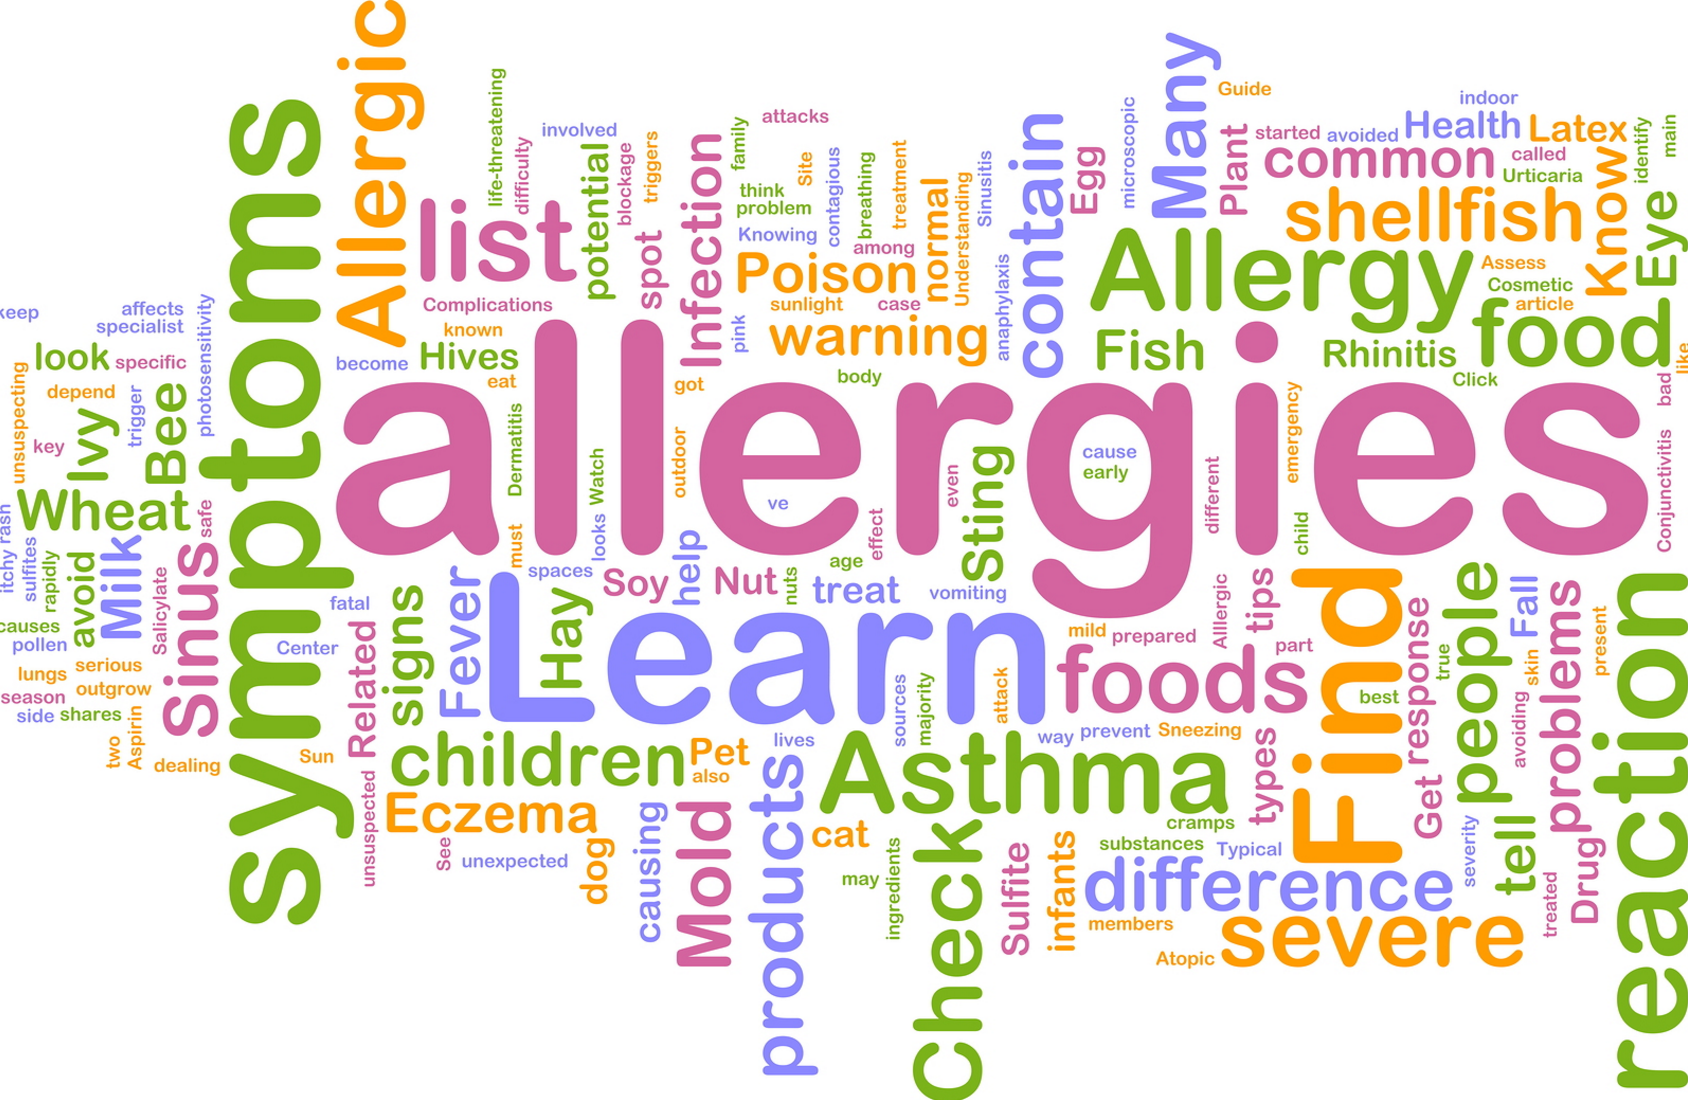 food allergies: signs, symptoms, and management - america's best